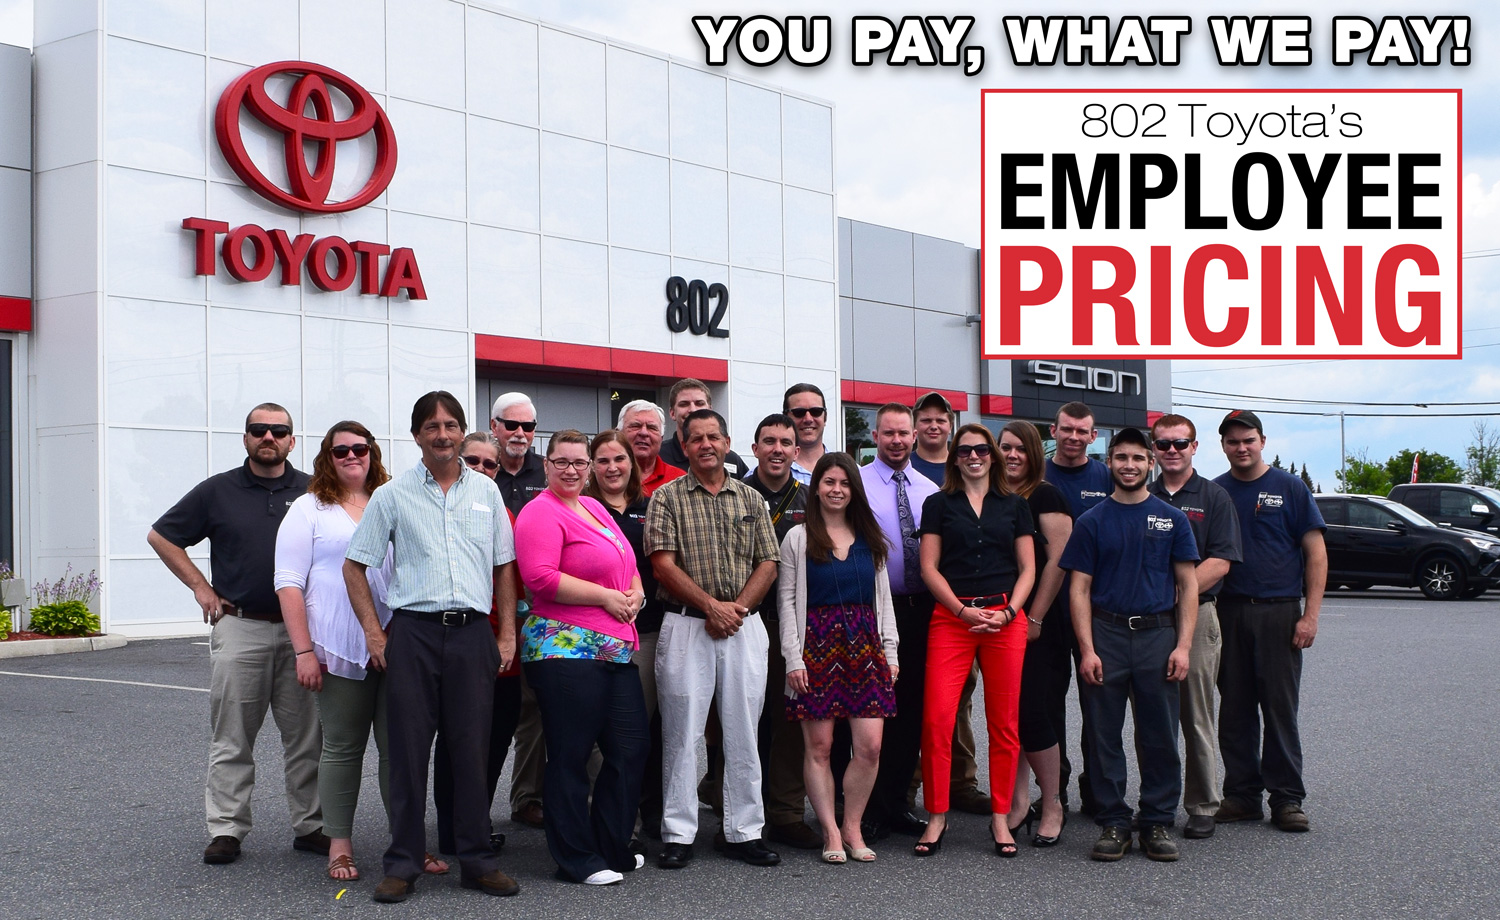 Employee Pricing at 802 Toyota. | 802Cars.com